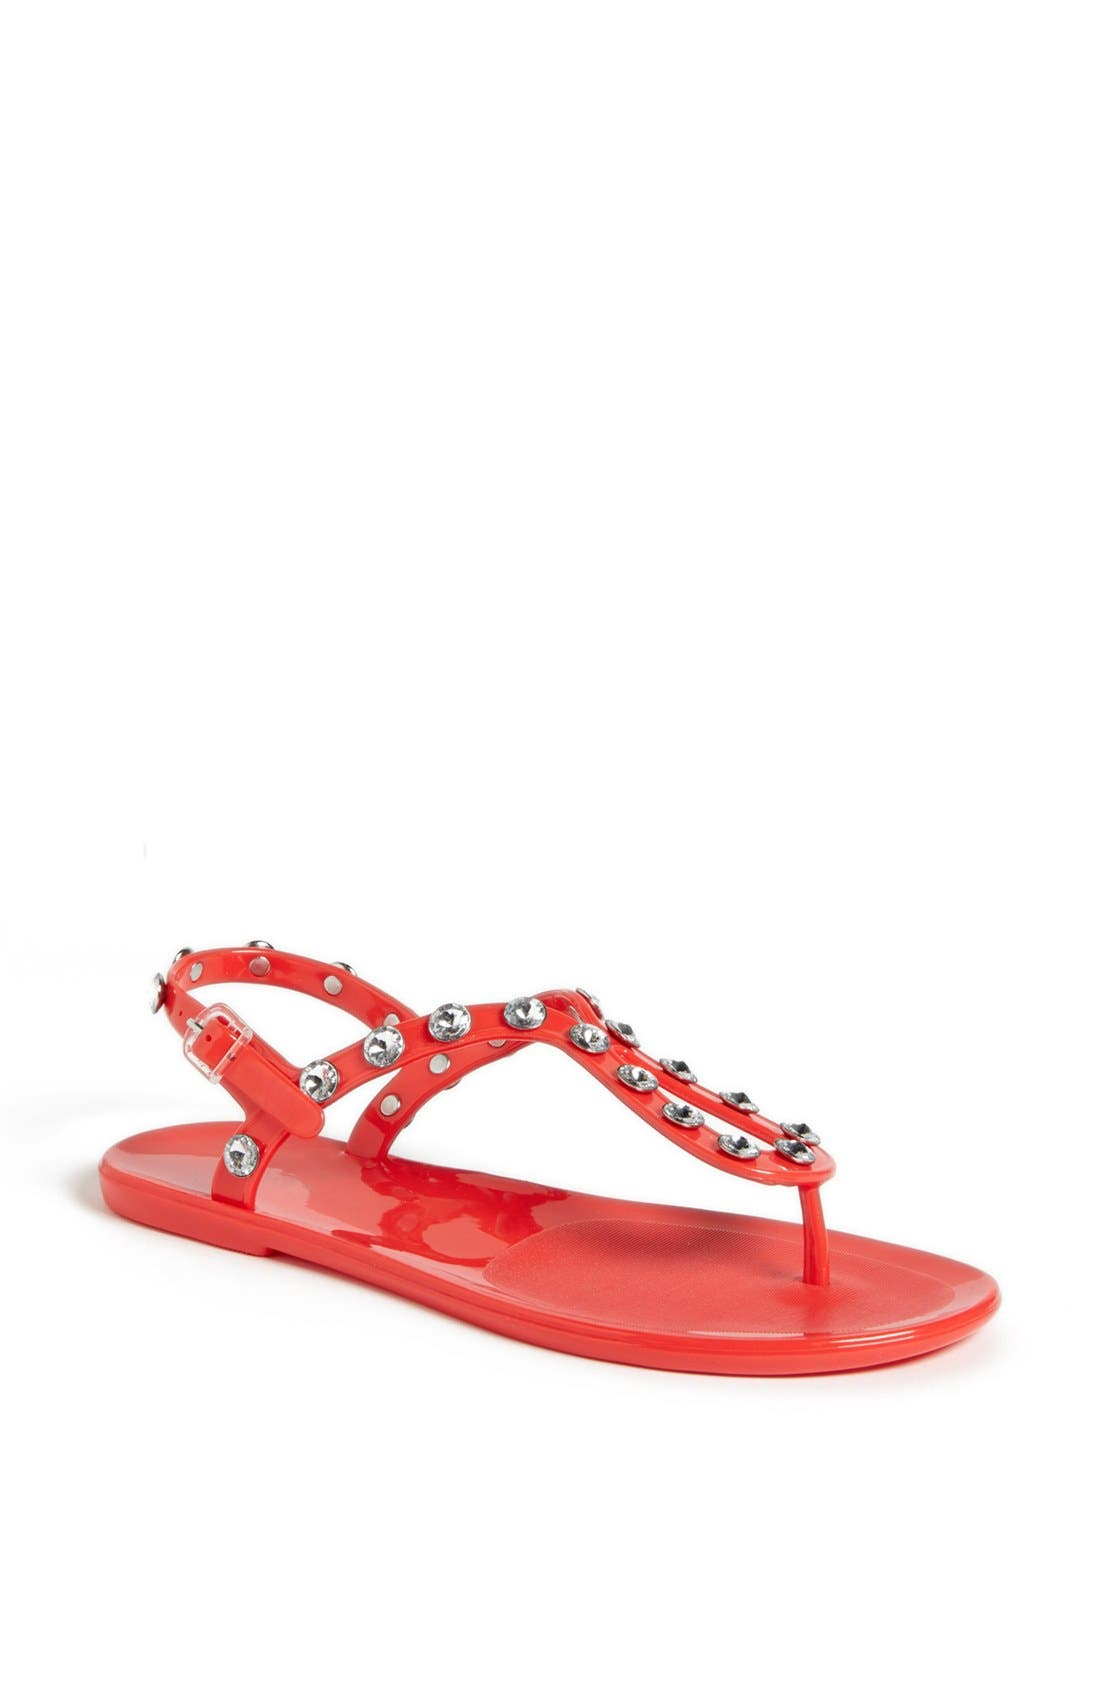 Alternate Image 1 Selected - Holster Fashion 'Supermodel' Jelly Thong Sandal